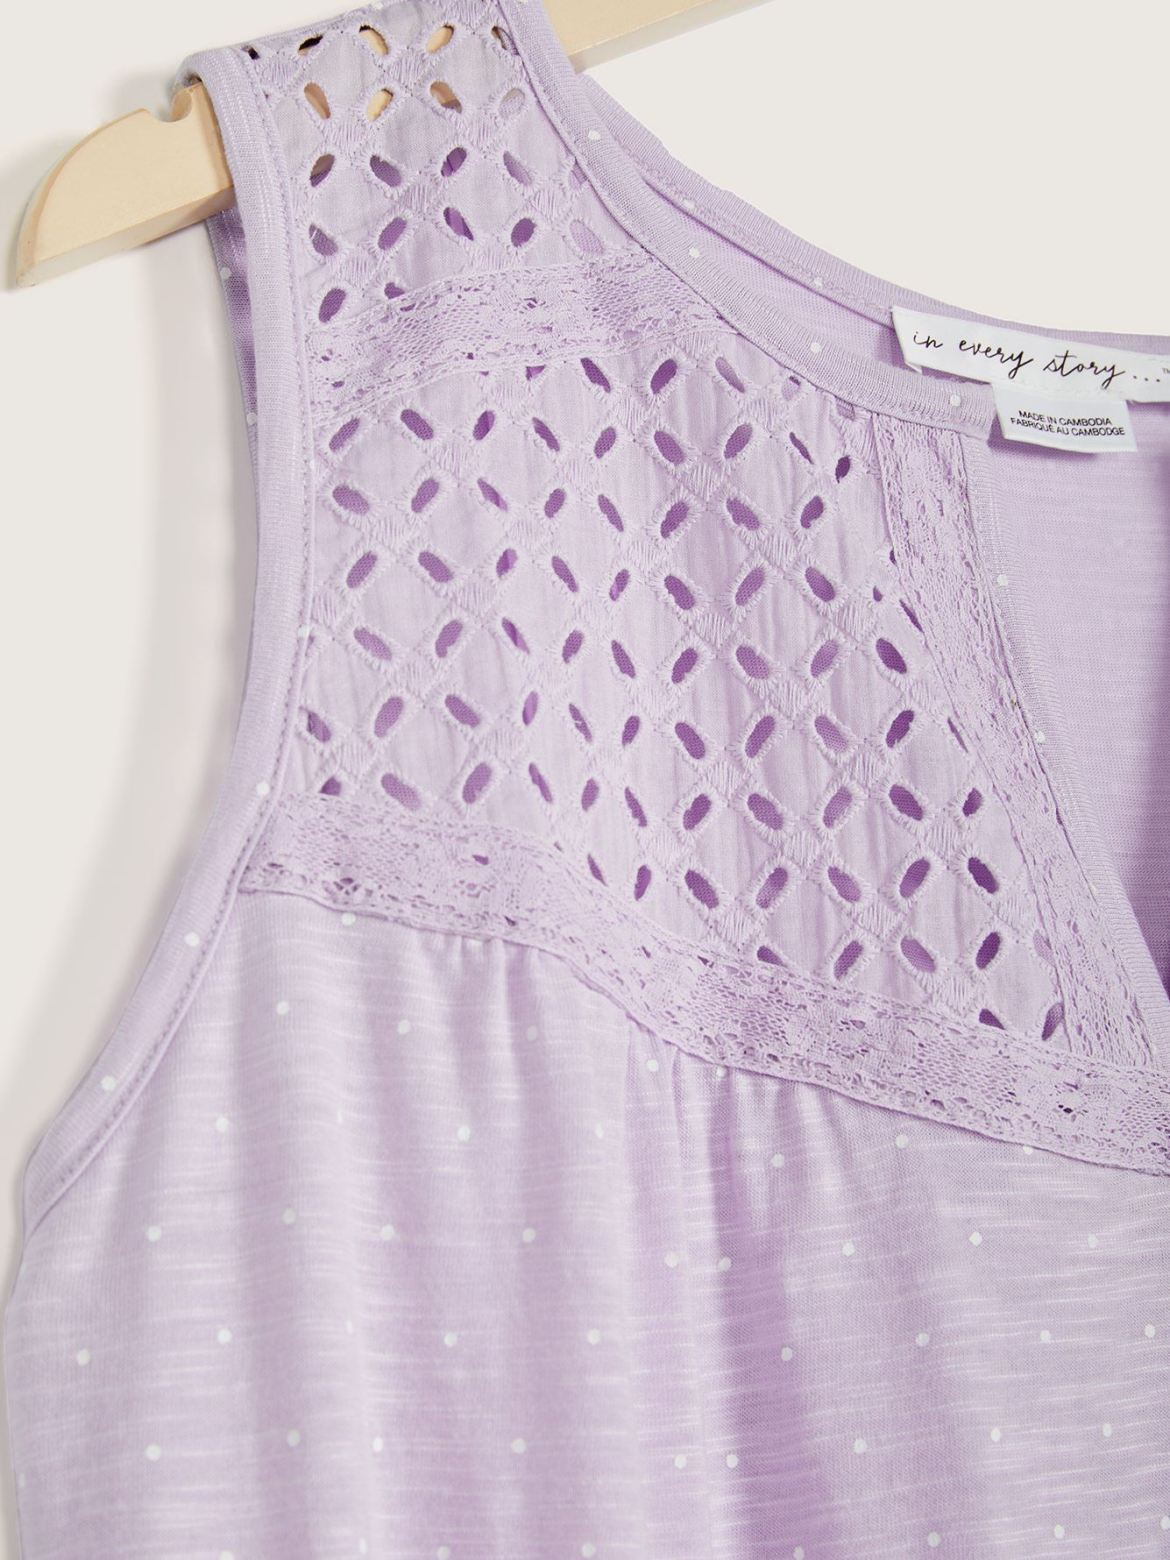 Printed Sleeveless Top with Lace Detail - In Every Story